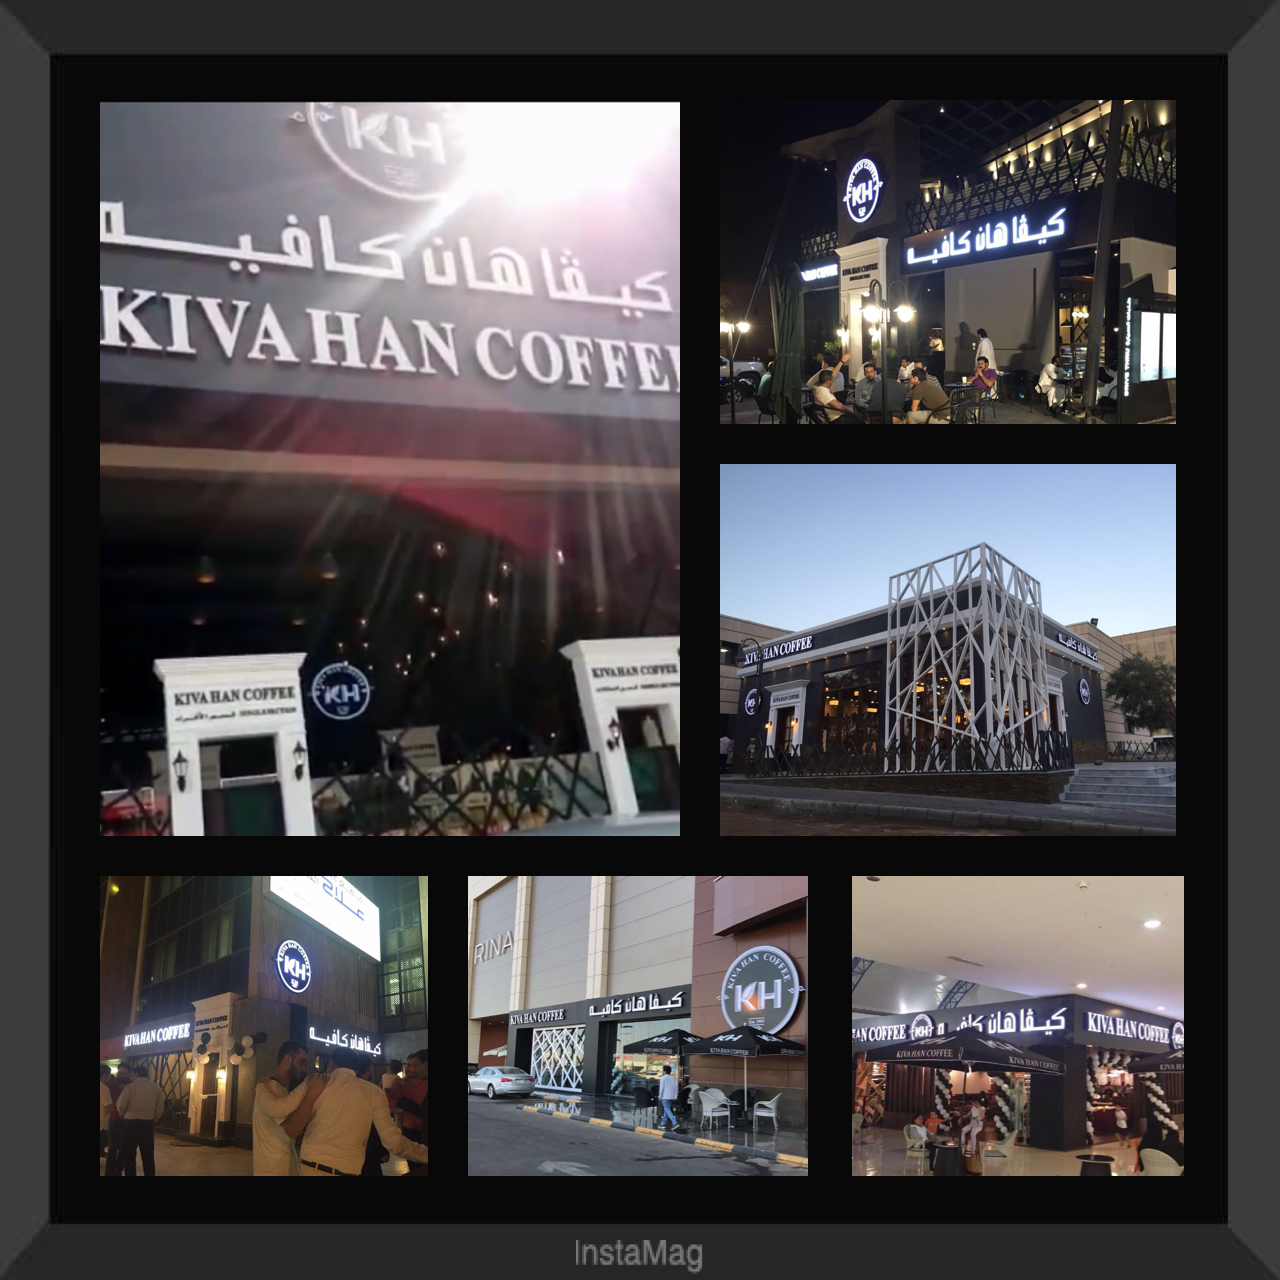 kiva-han-coffee-retail.jpg